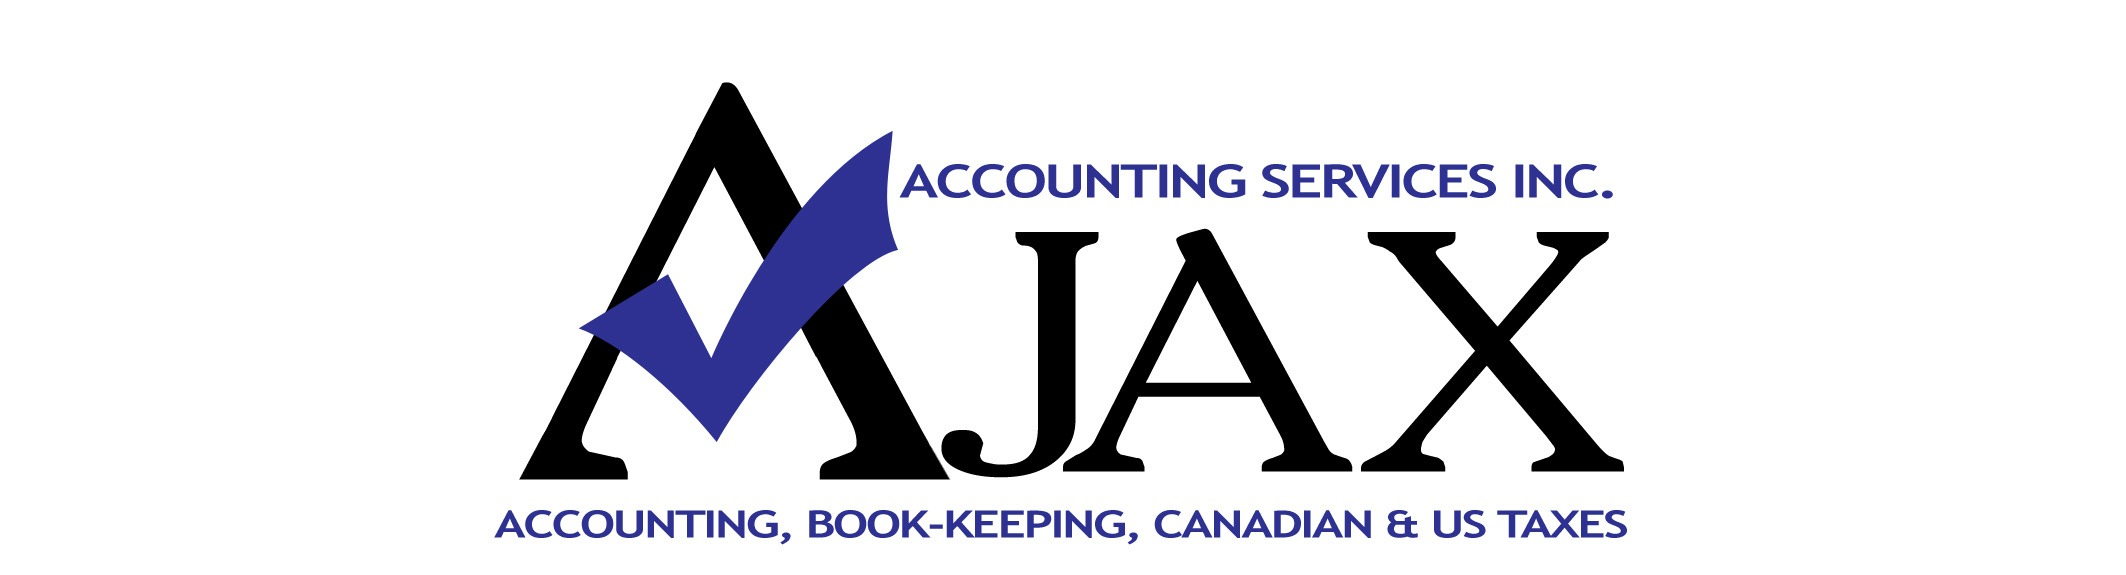 Ajax Accounting